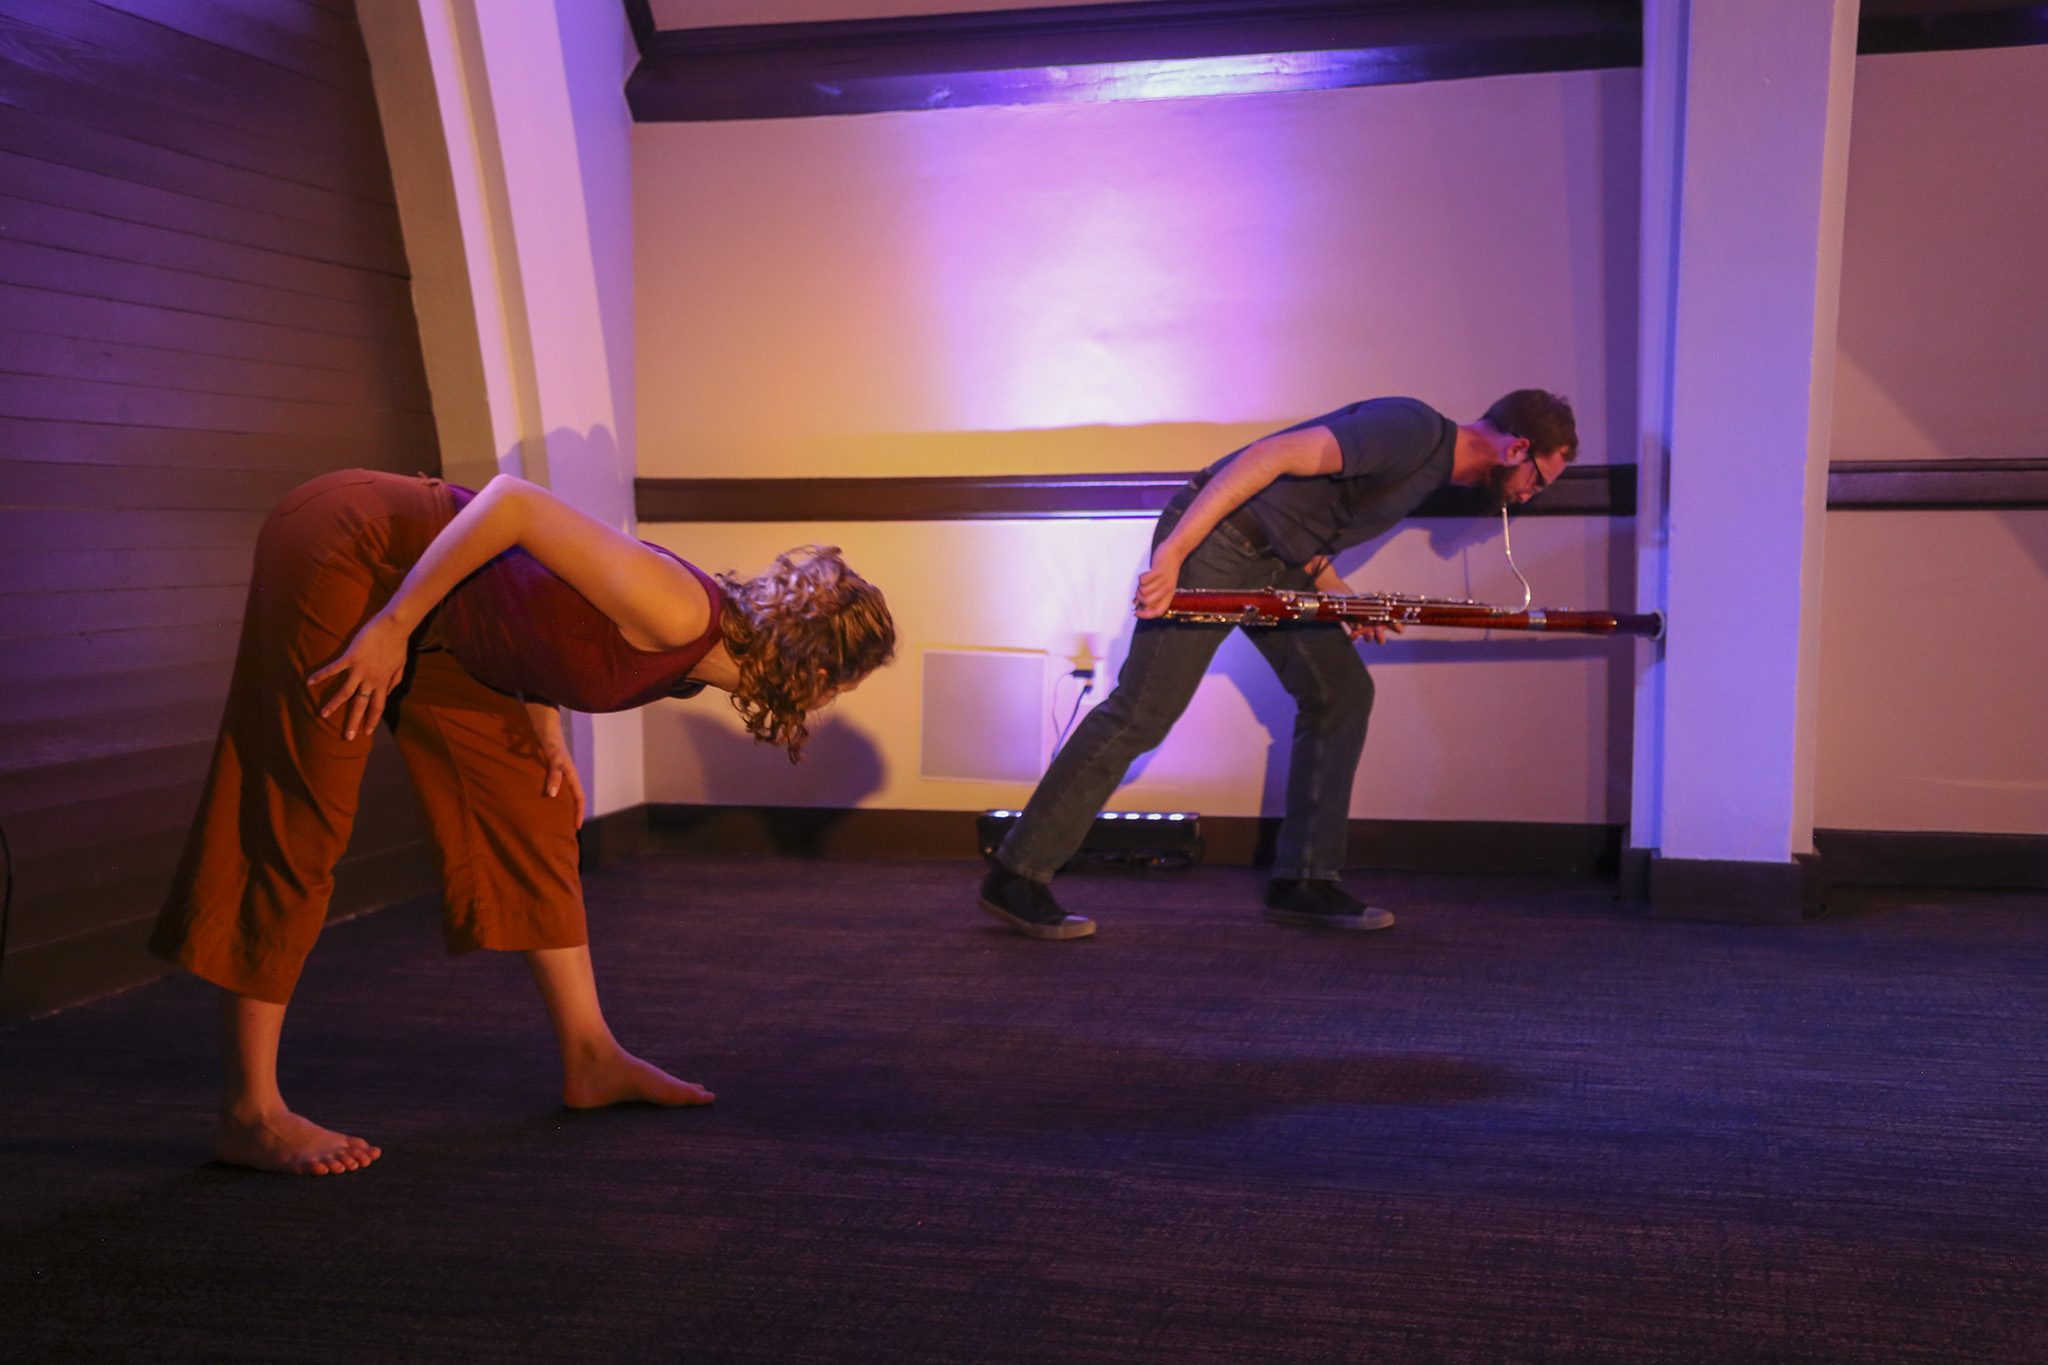 Two people bend at the hips towards the right. The woman closest to the camera is watches the other person. The person bending in the back is holding a bassoon parallel to the floor and is pushing it against the wall while playing it. They are wearing shades of dark blue, while the woman wears shades of orange and red. The room is cast in a dim pink light.